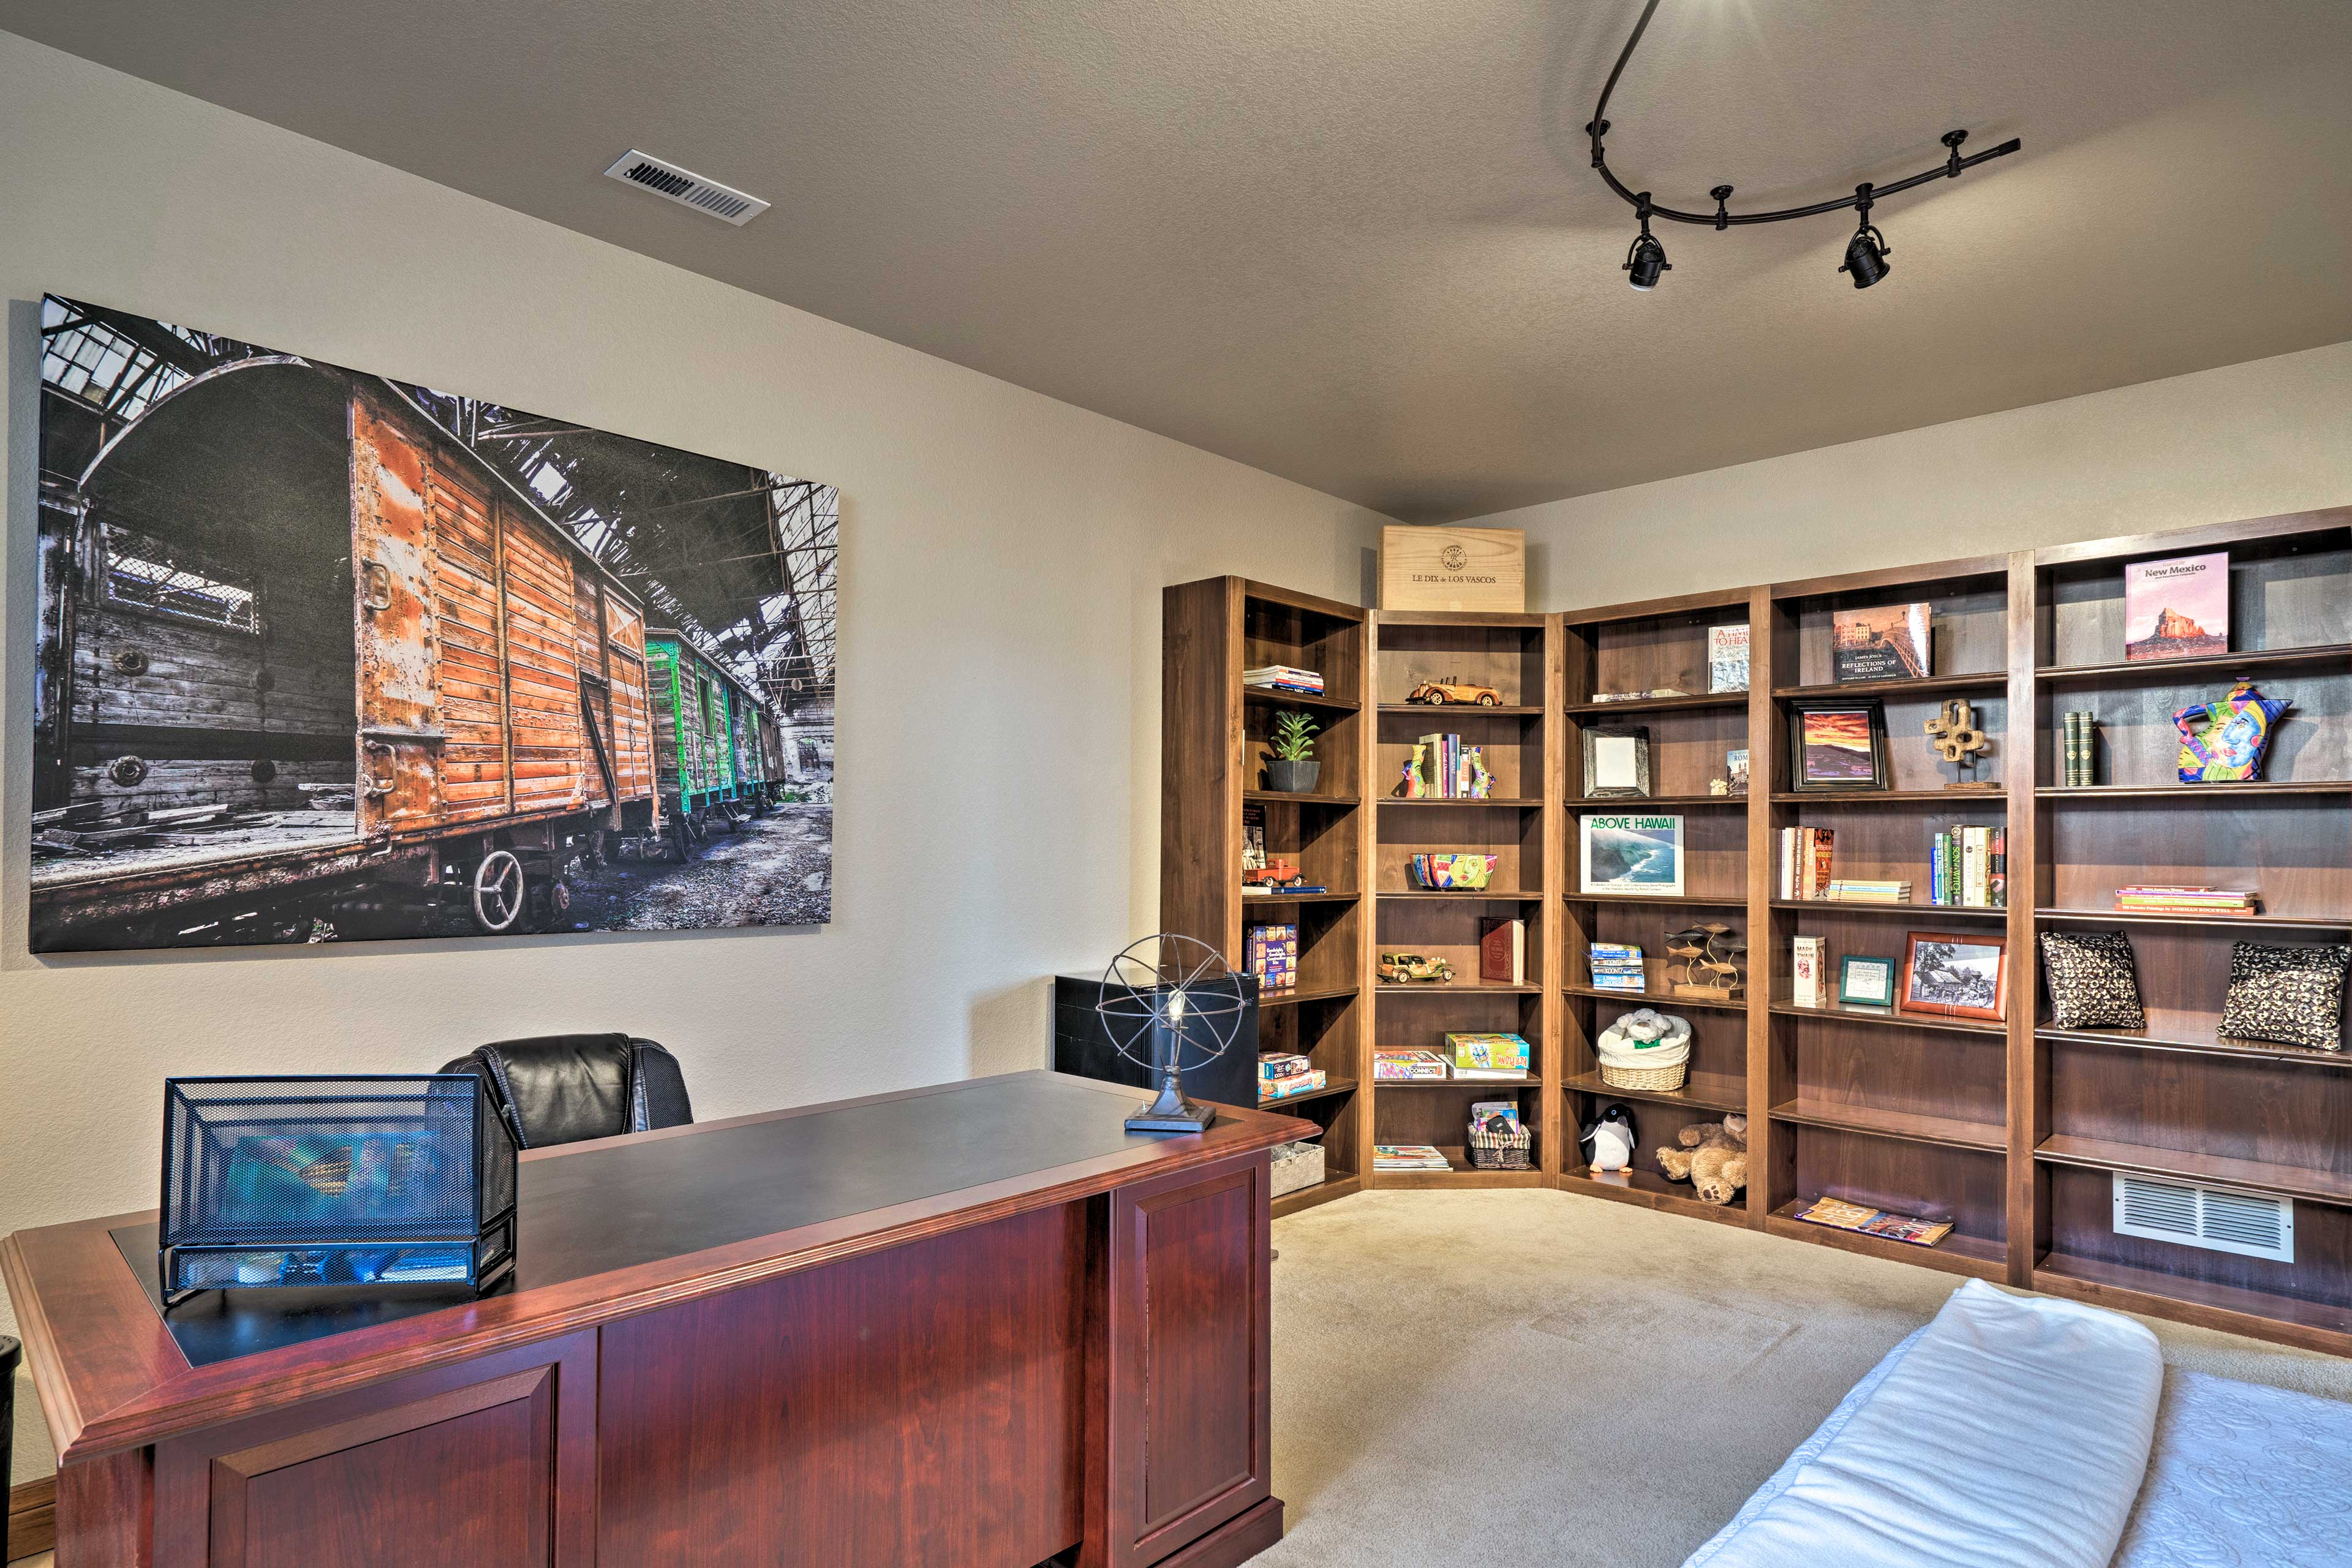 Connect to free WiFi and work remotely from this laptop-friendly office space.